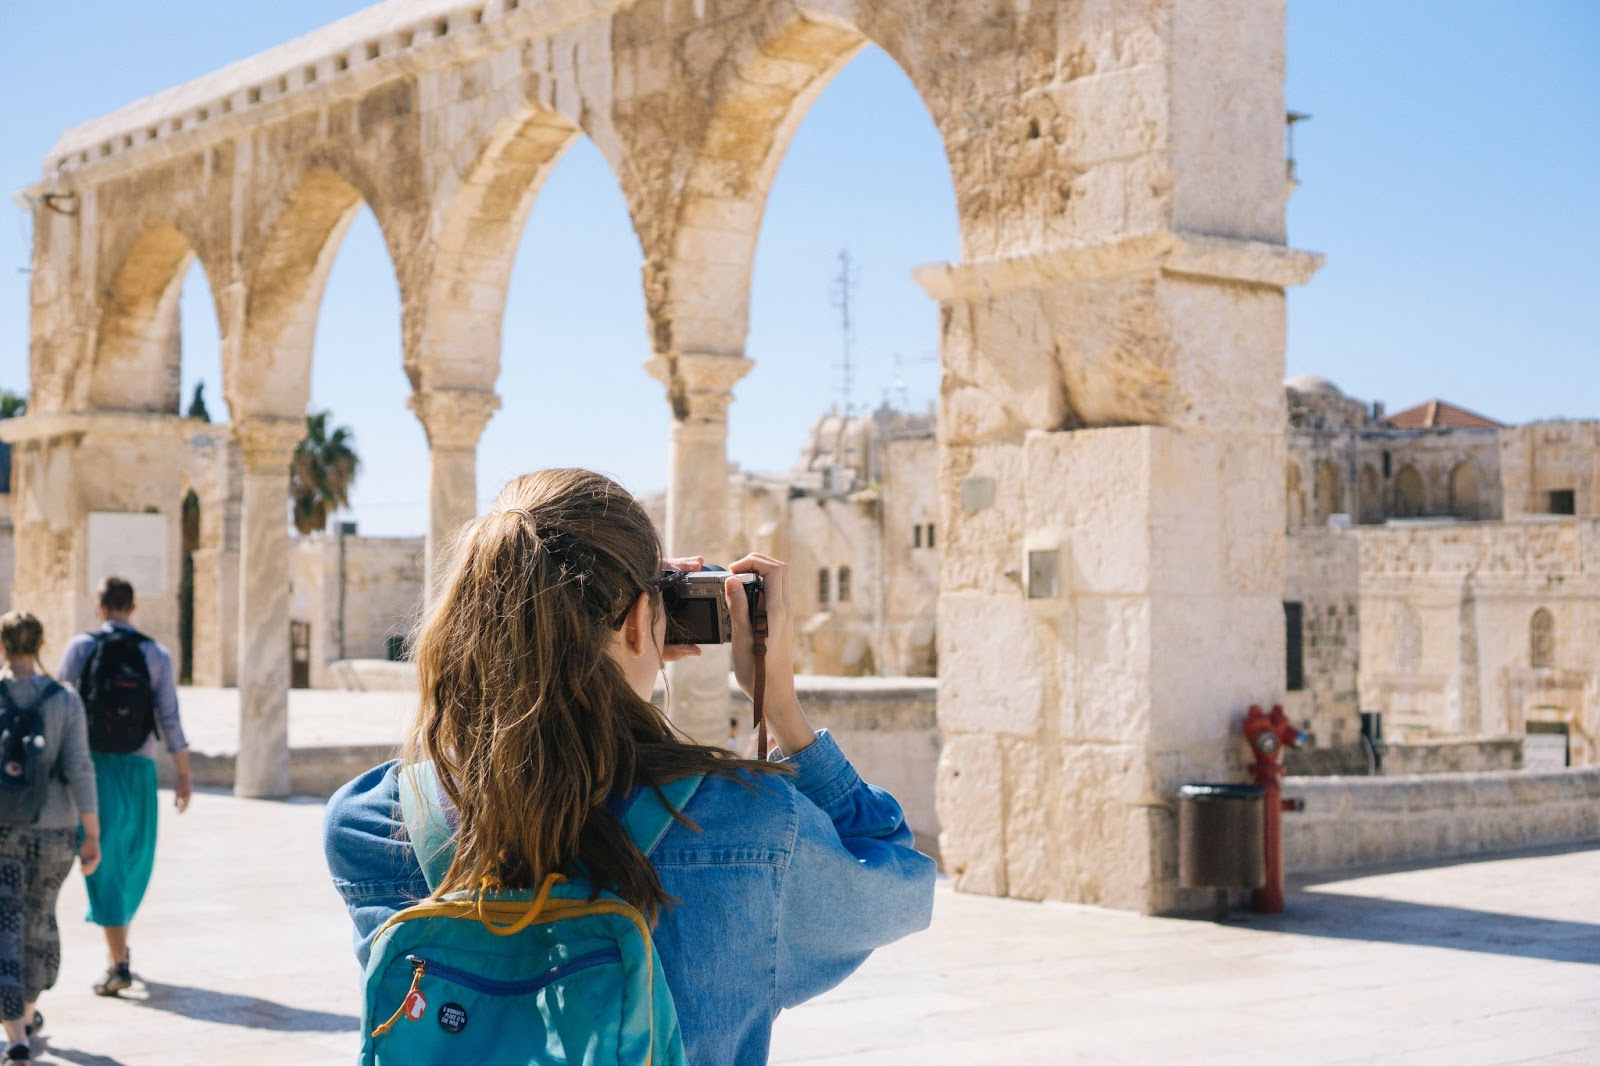 Picture of a female tourist taking a picture with her camera. This is concerning an article on how to insure camera equipment when traveling abroad.